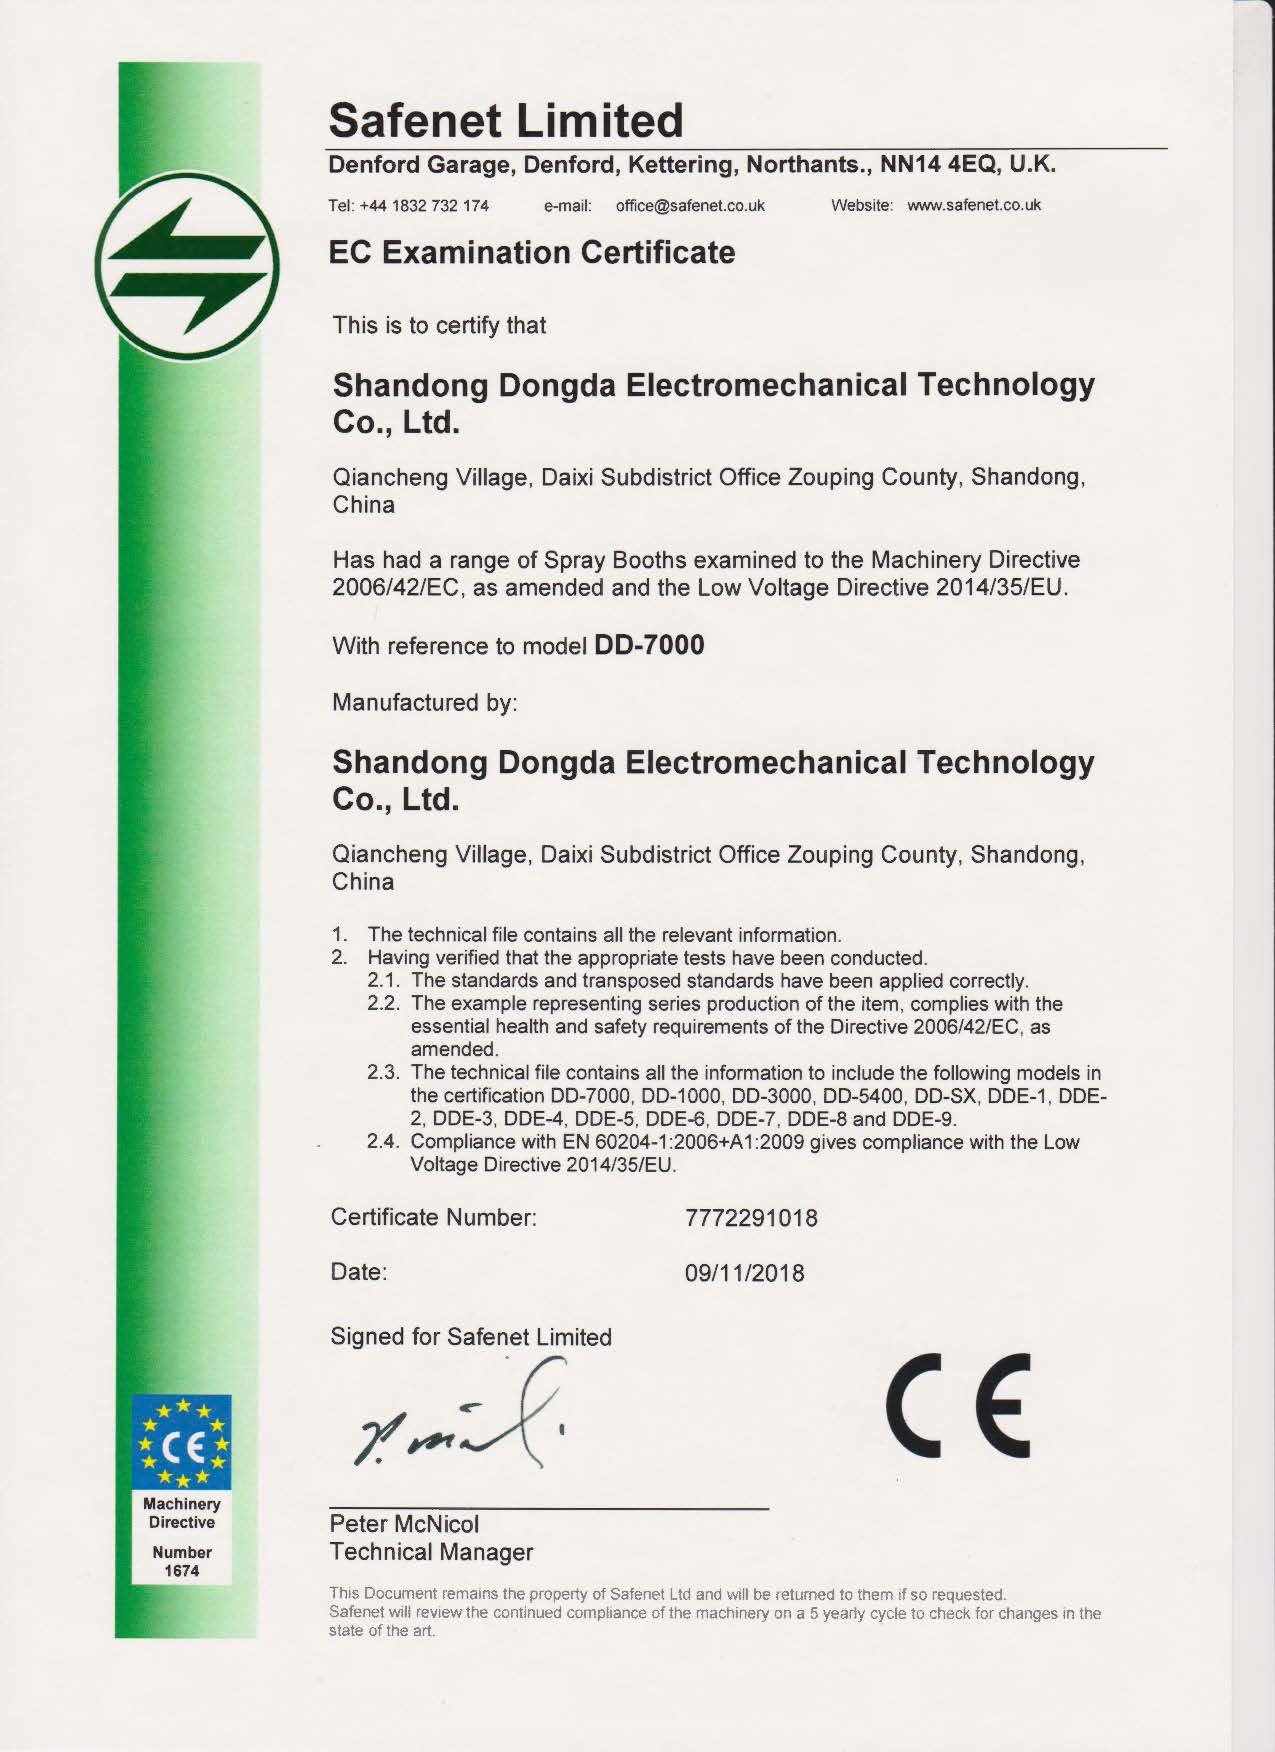 Congratulations on the CE Certification of Dongda Products